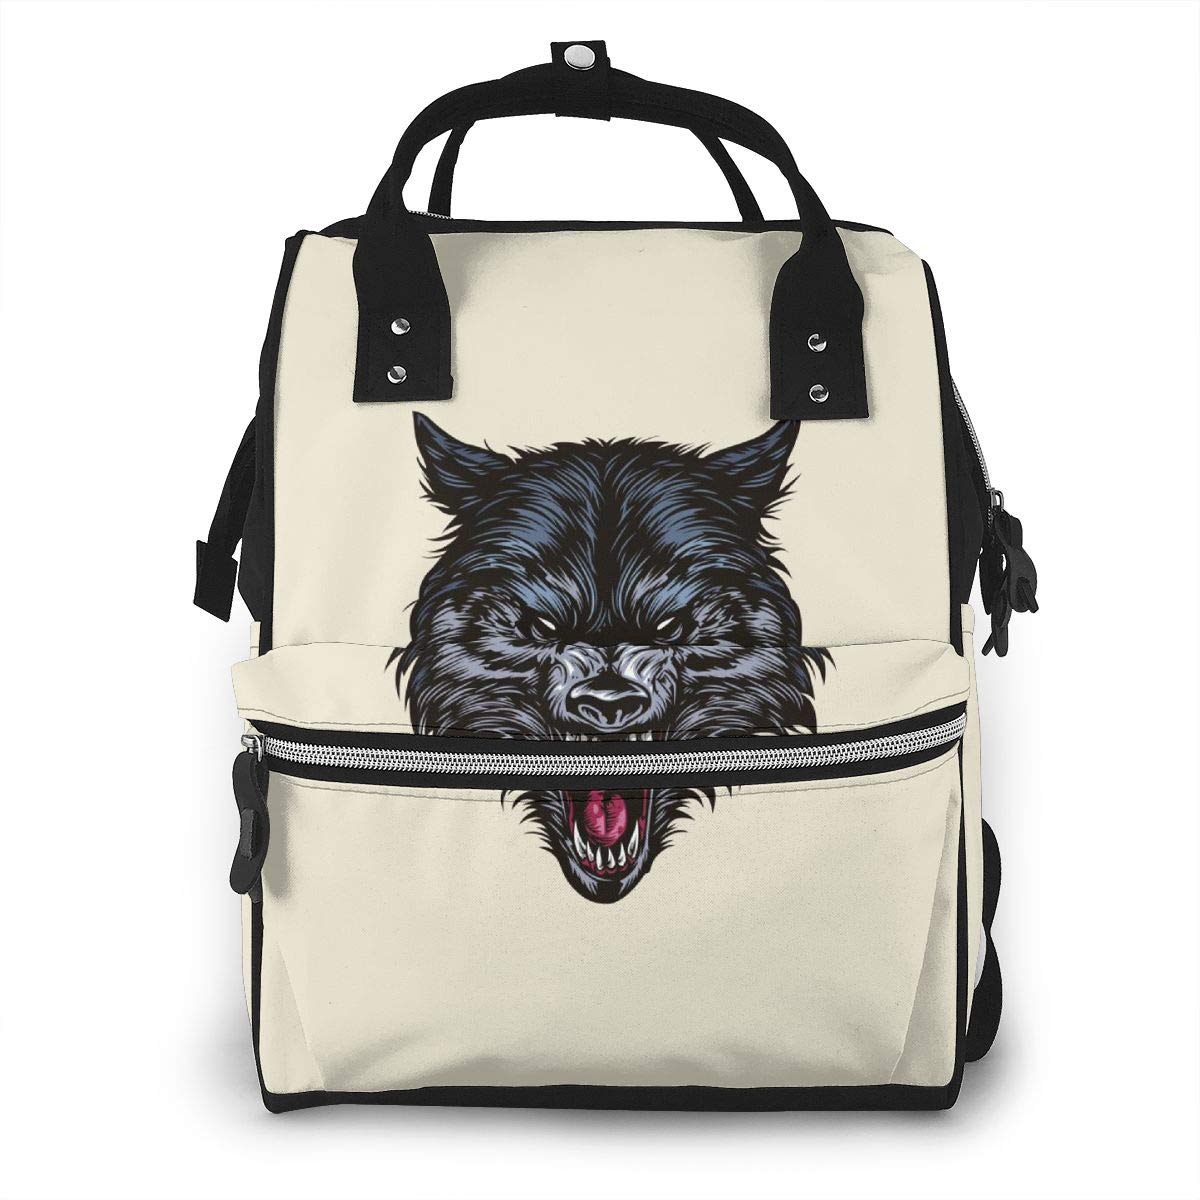 Wolf Head Large Capacity Diaper Nappy Travel Nursing Bag Mummy Mom Backpack Laptop Multi-Function for Baby Care Women Family